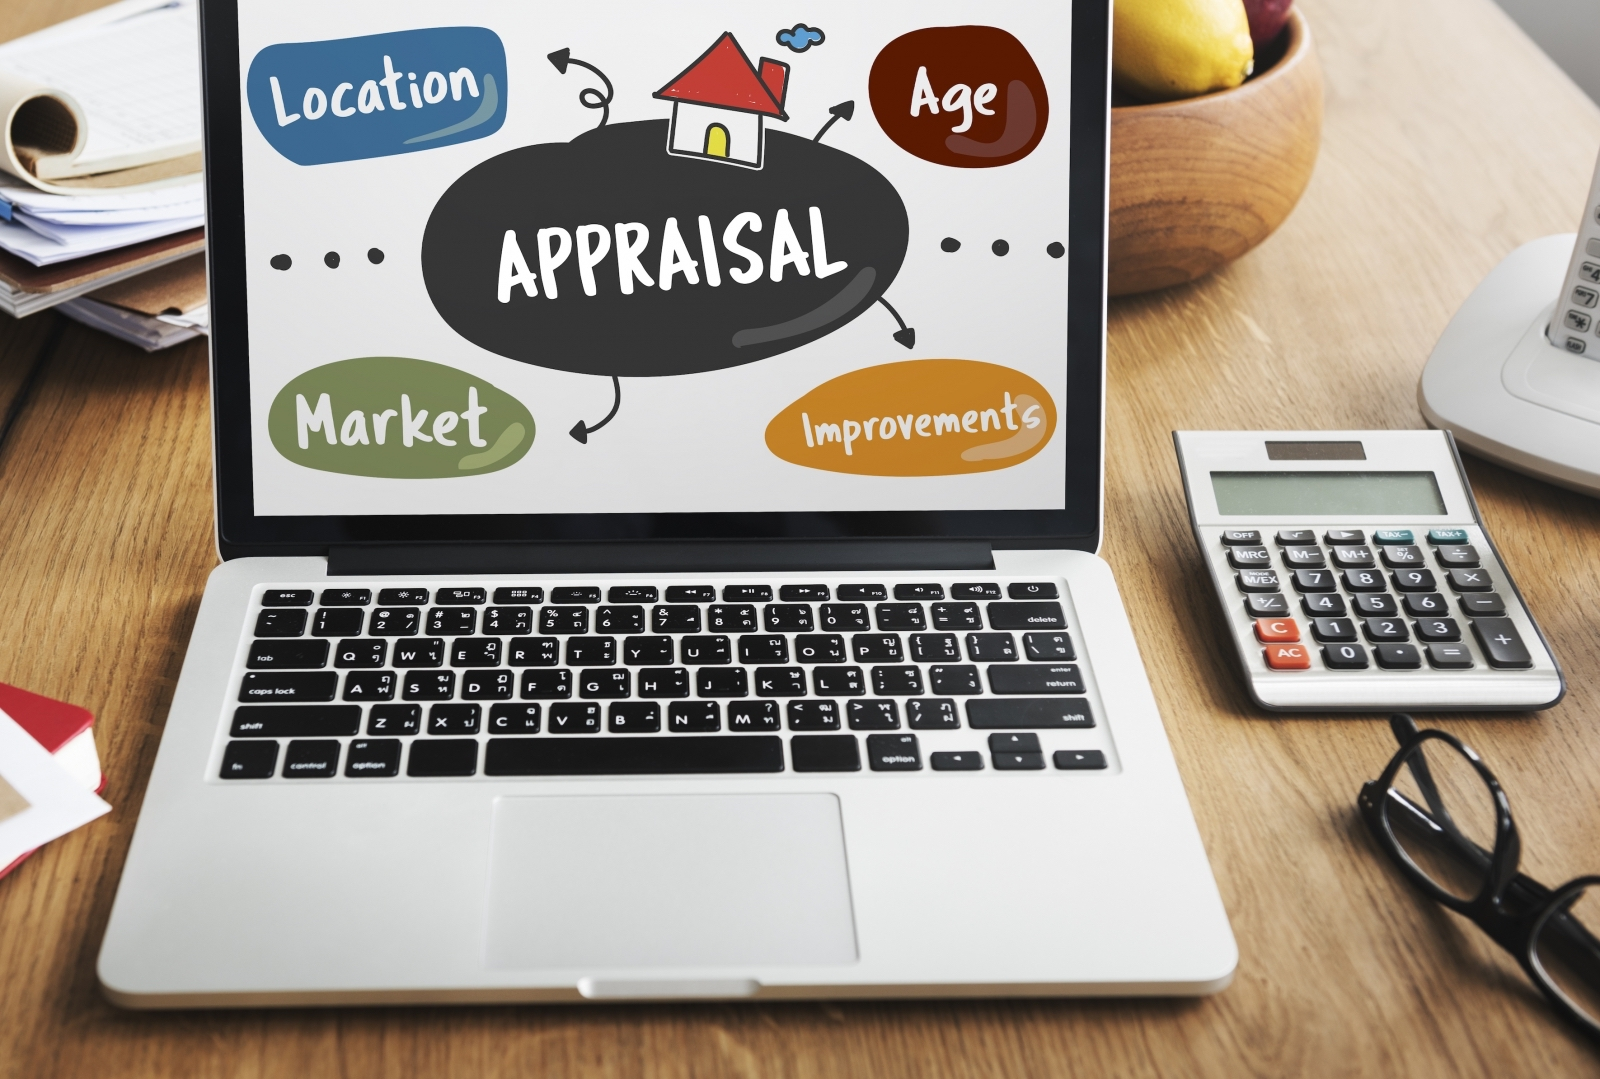 Are remote appraisals and notaries here to stay?